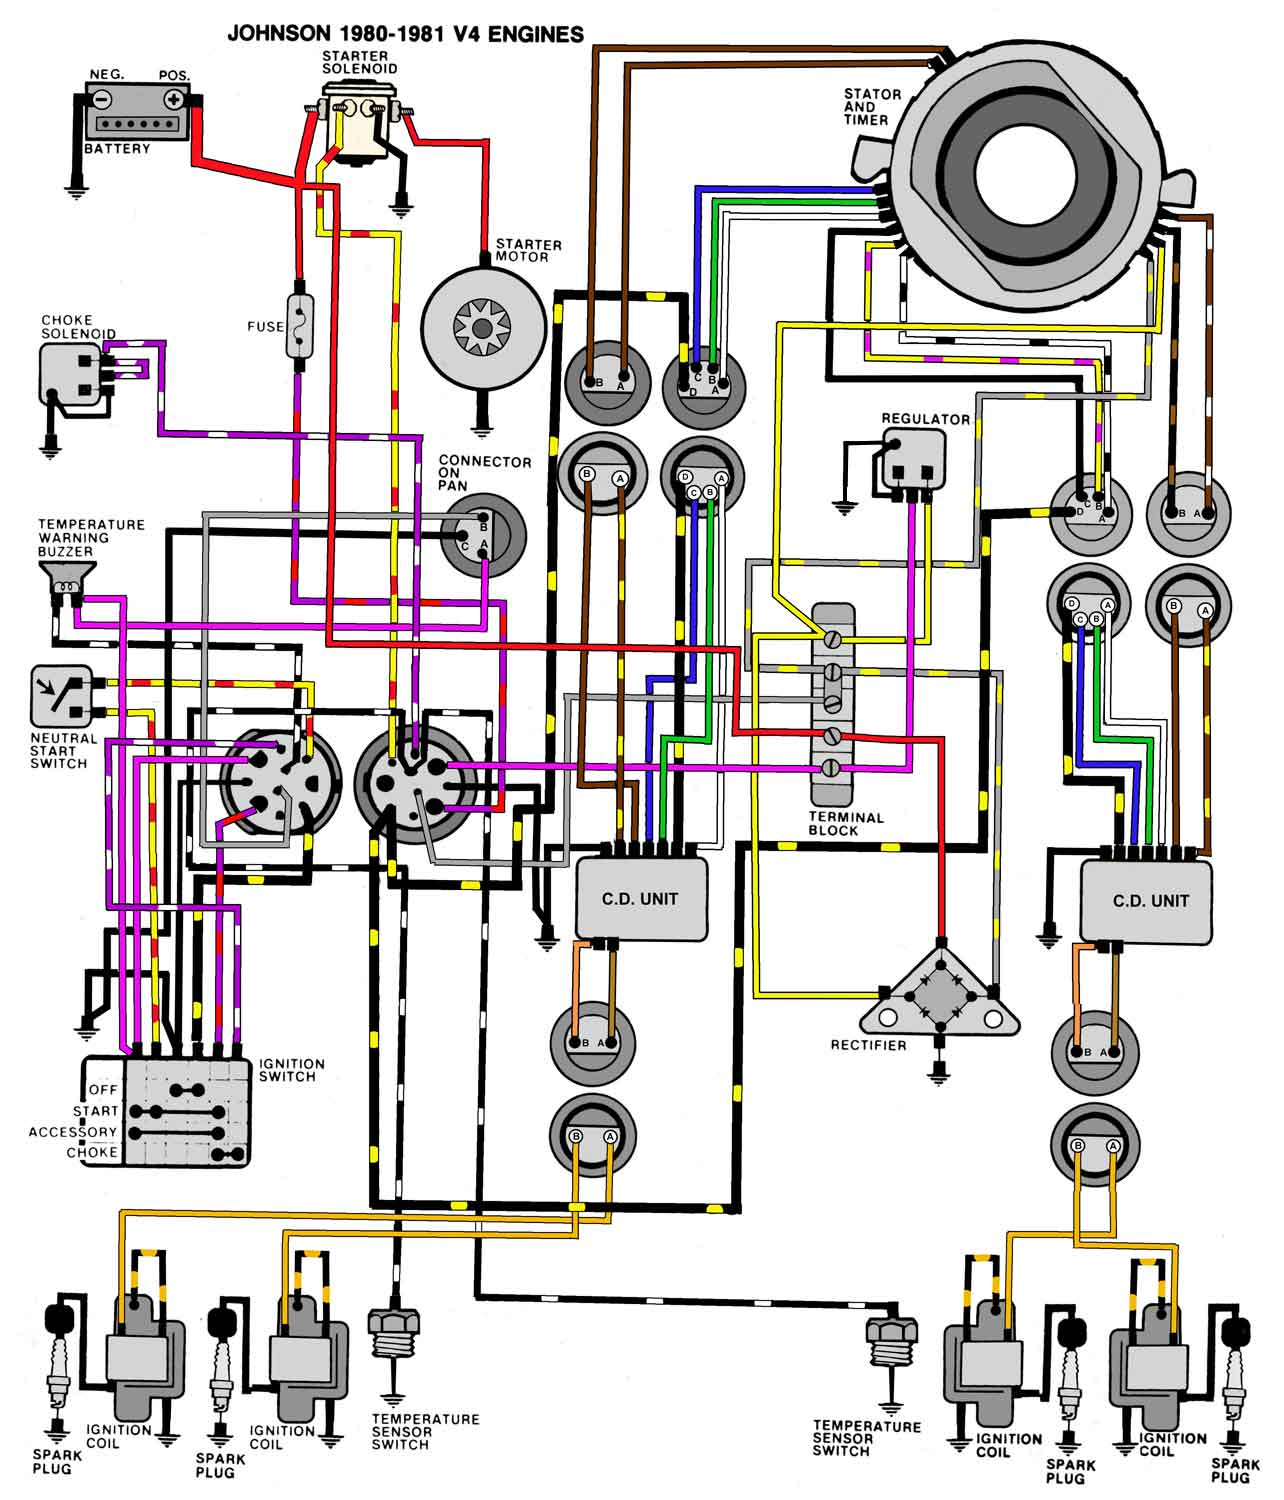 80_81_V4 mastertech marine evinrude johnson outboard wiring diagrams 70 HP Evinrude Schematic at cos-gaming.co